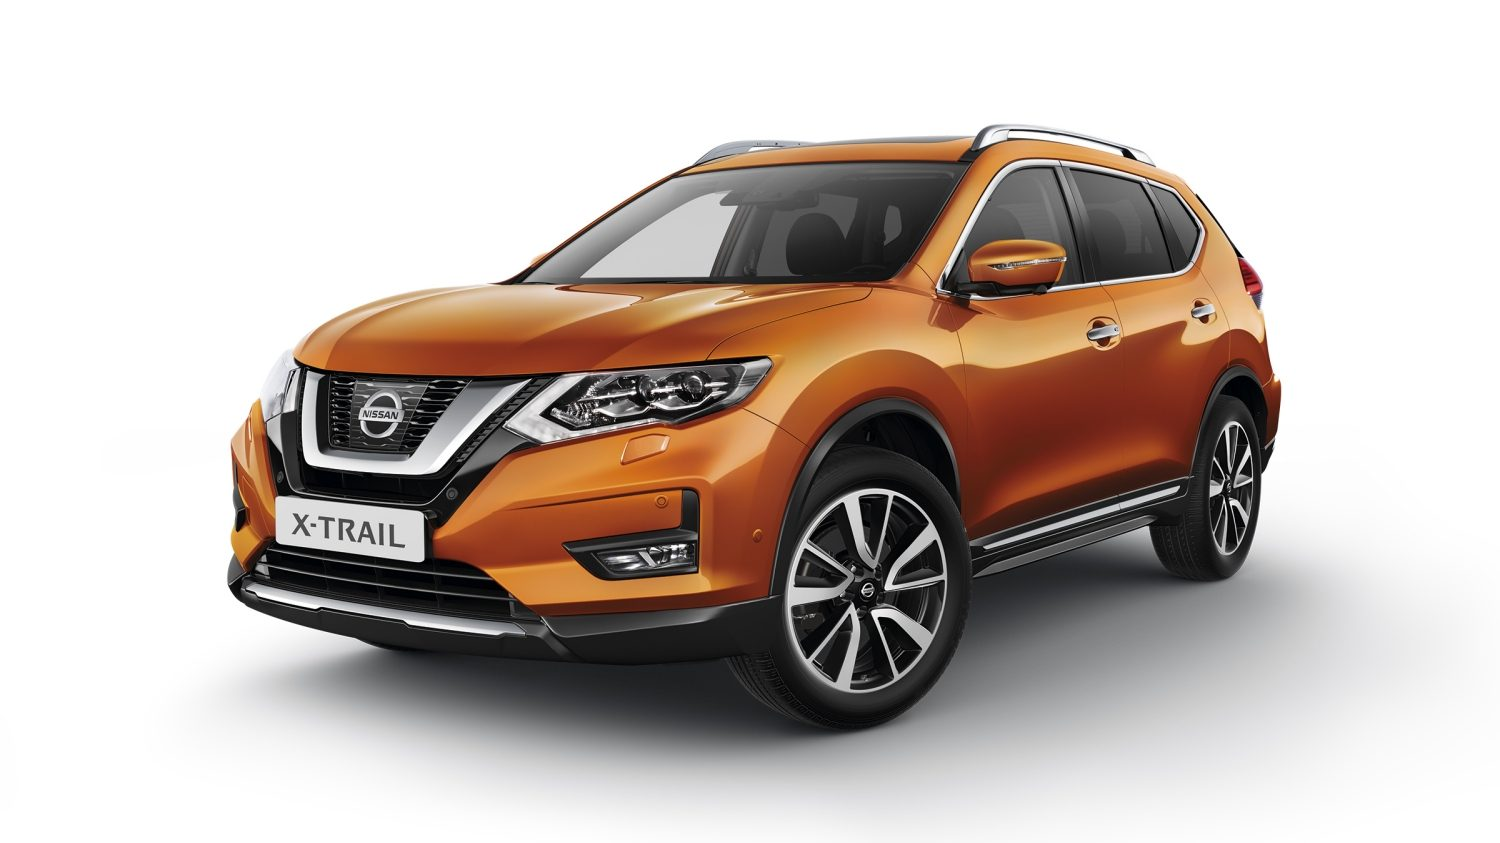 Nissan X-TRAIL, packshot, full front